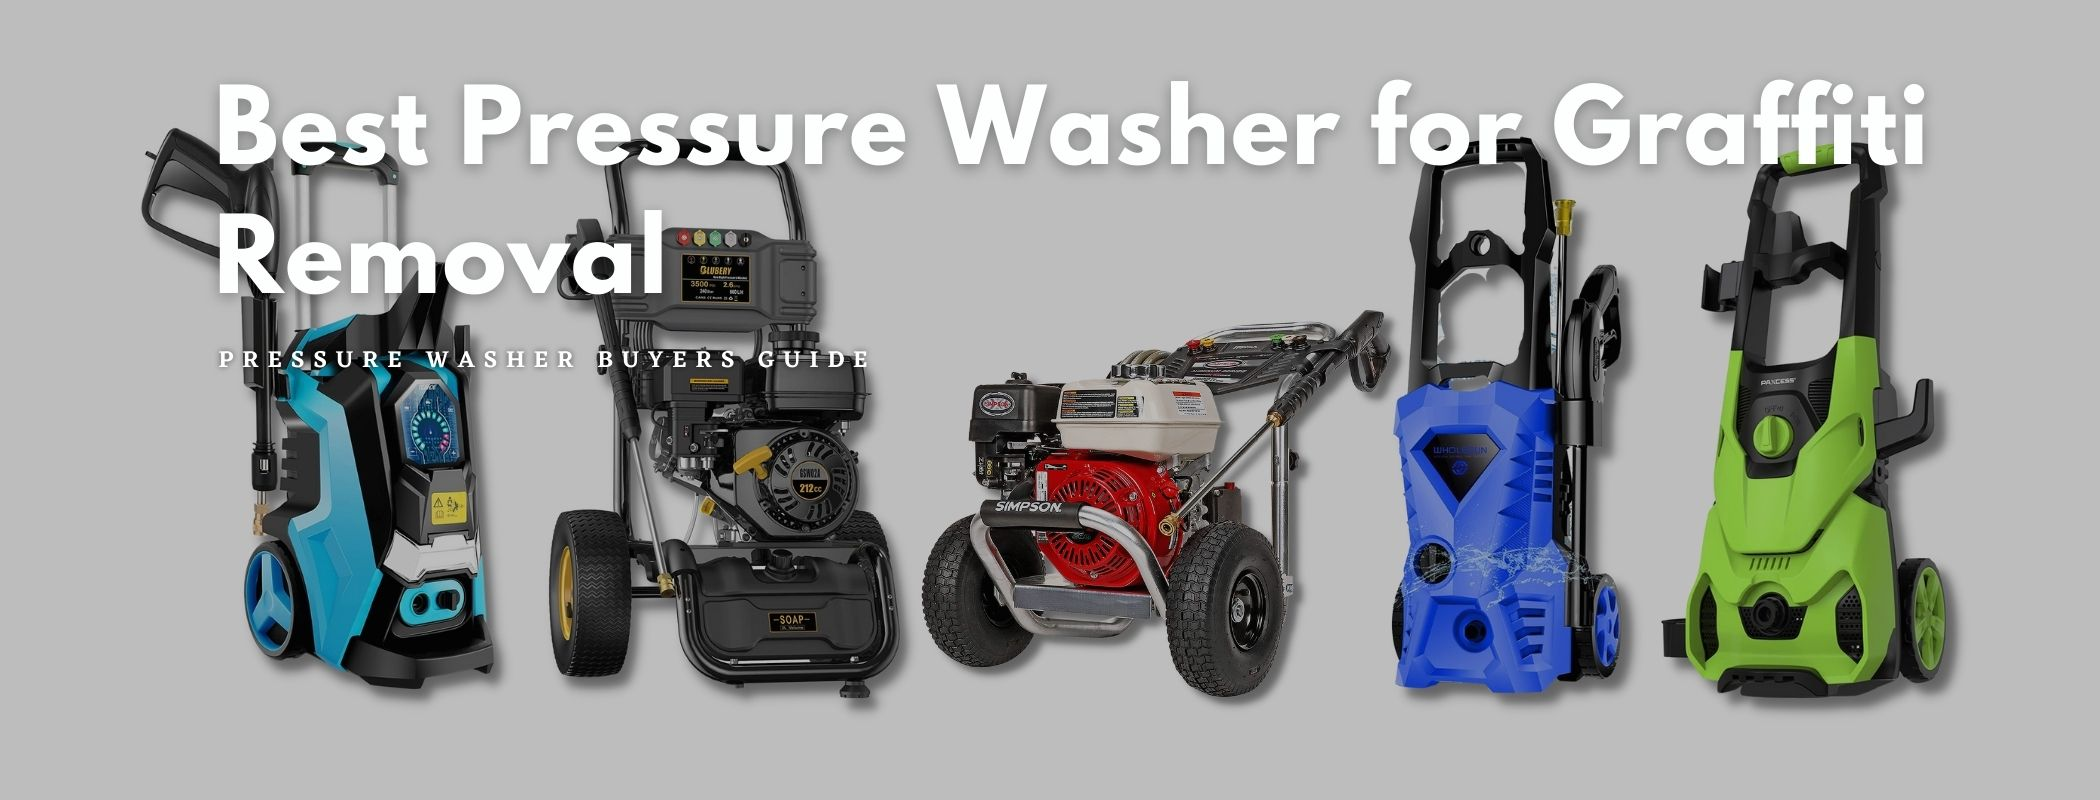 Best Pressure Washer for Graffiti Removal – Our Top 5